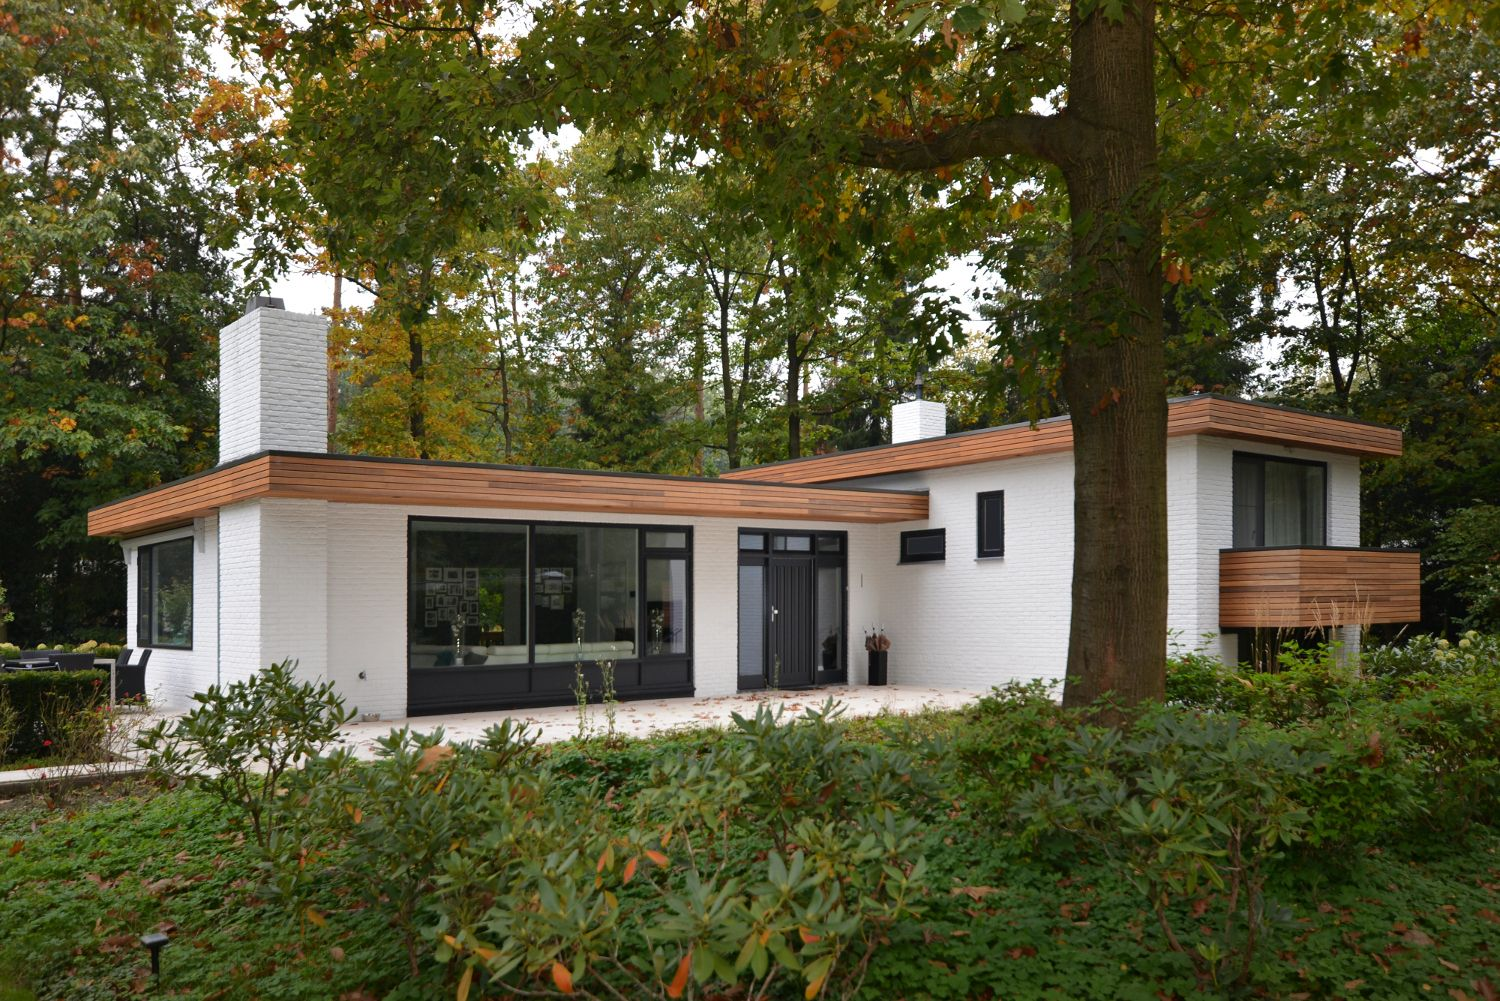 Facelift bungalow knegsel studio slotboom facelift for Moderne bungalow architectuur